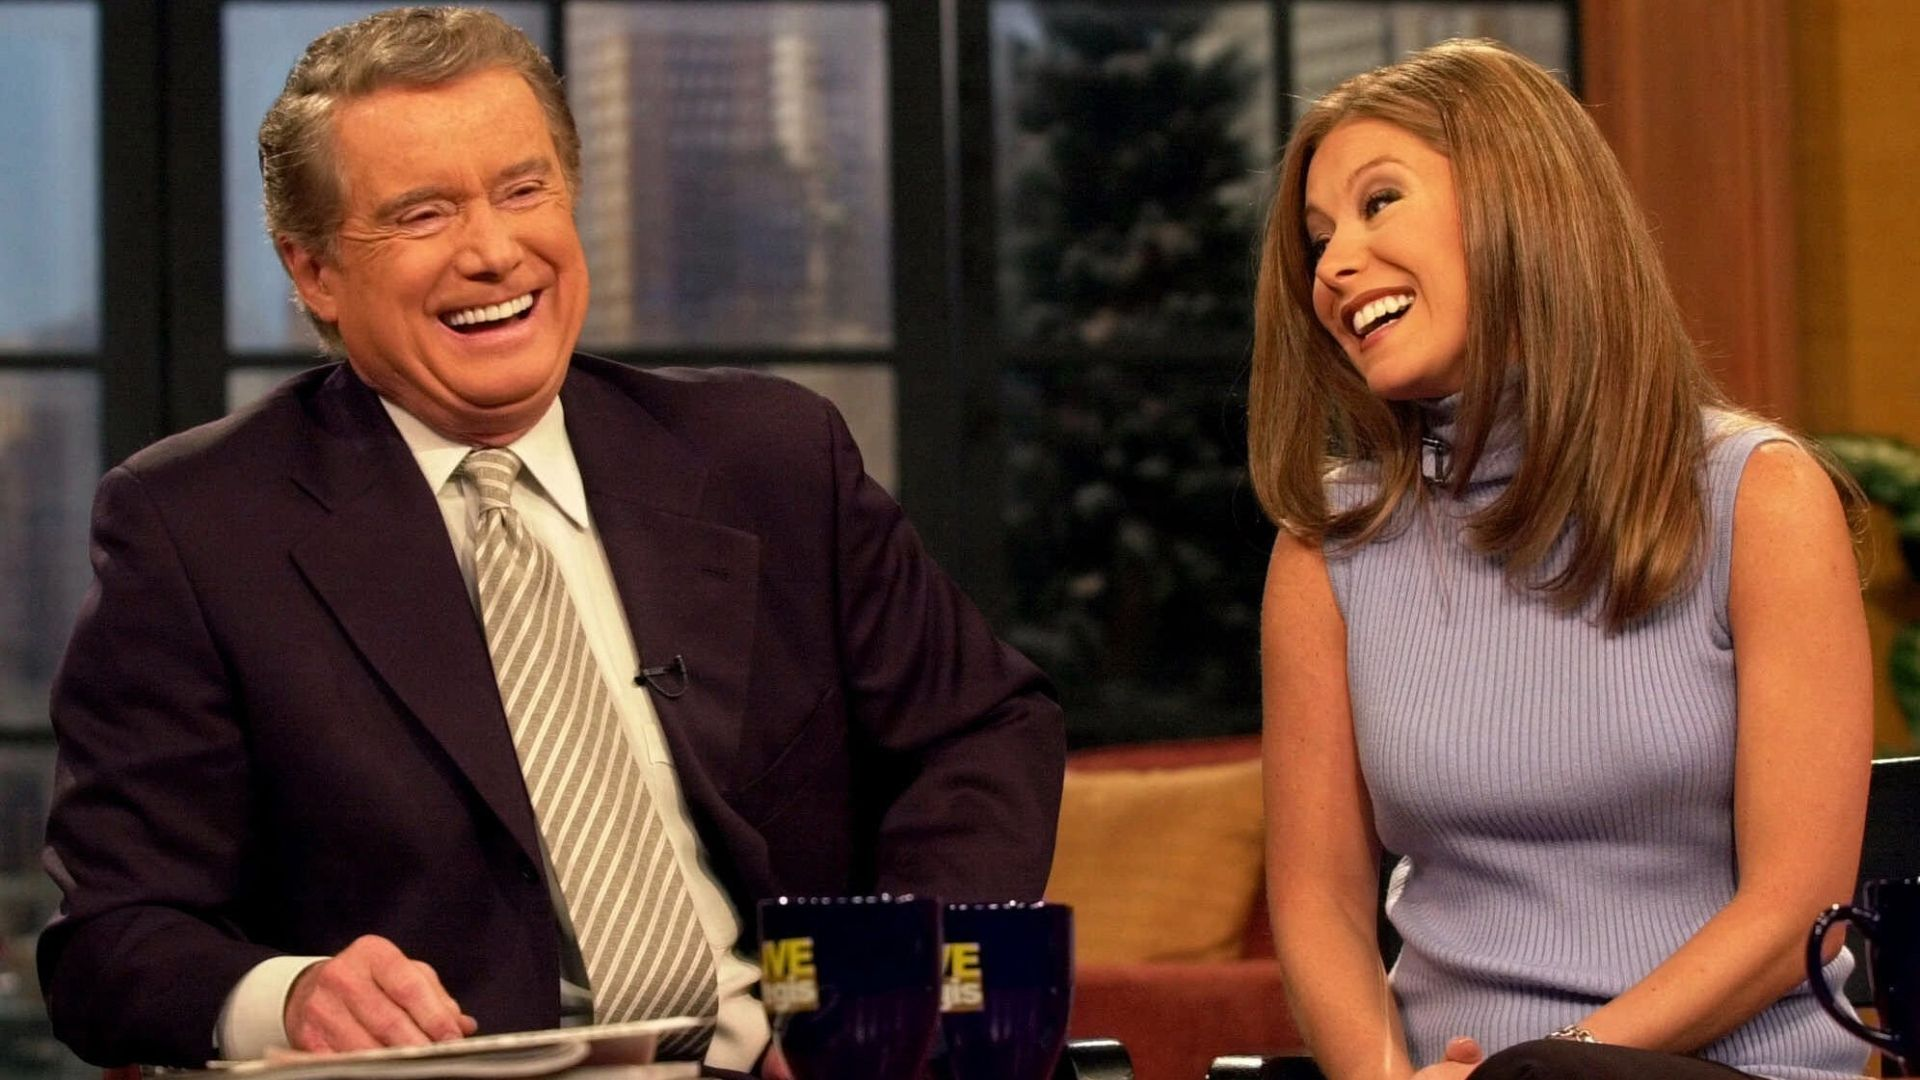 Live With Regis And Kathie Lee Where To Watch Every